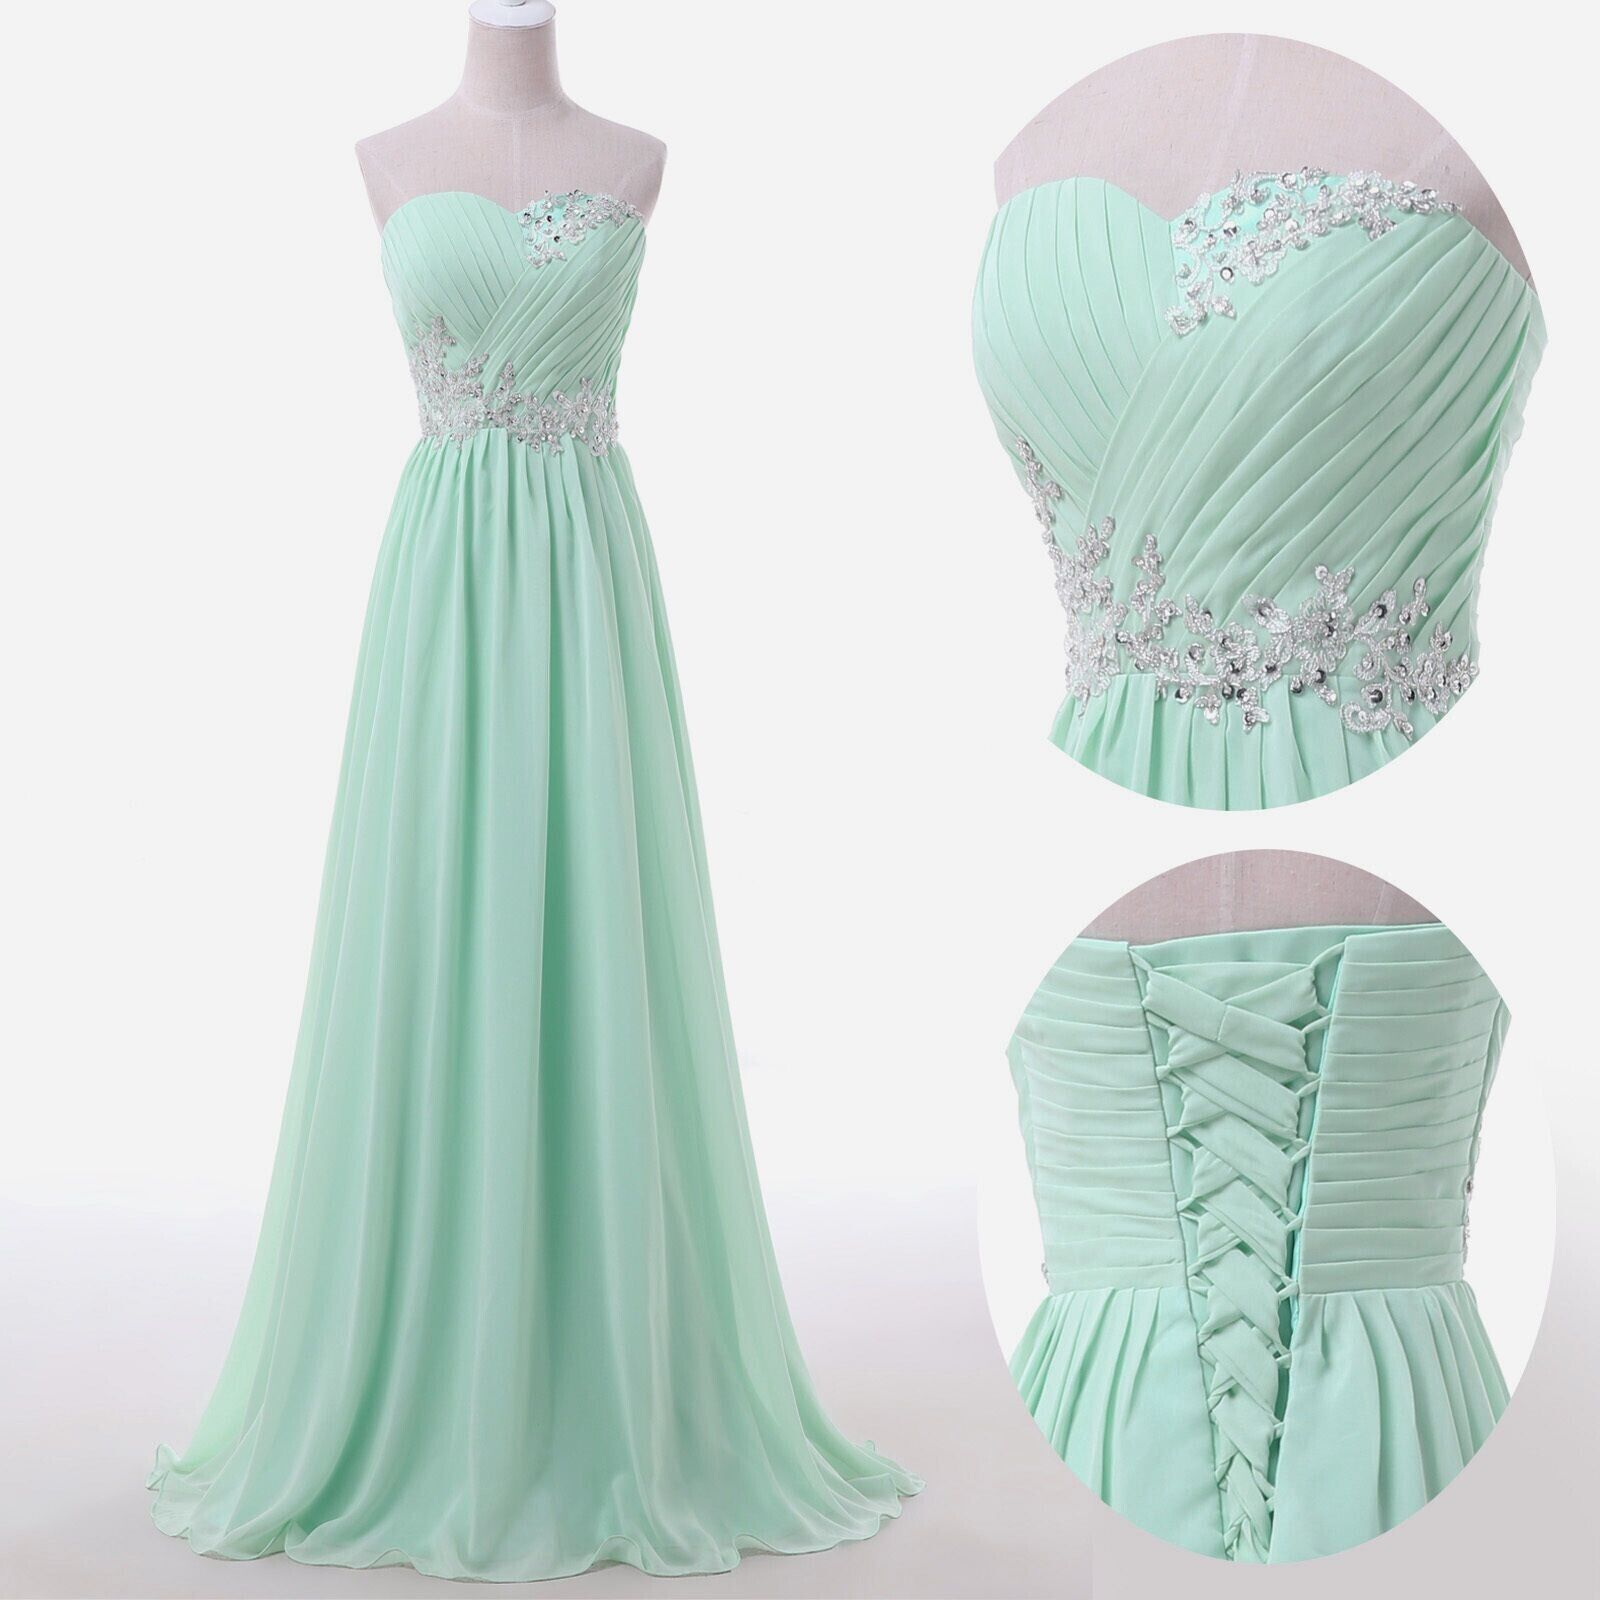 Blue and green prom dress  Sweetheart Sky Blue Mint Chiffon Prom Dresses Lace Beading Sweep